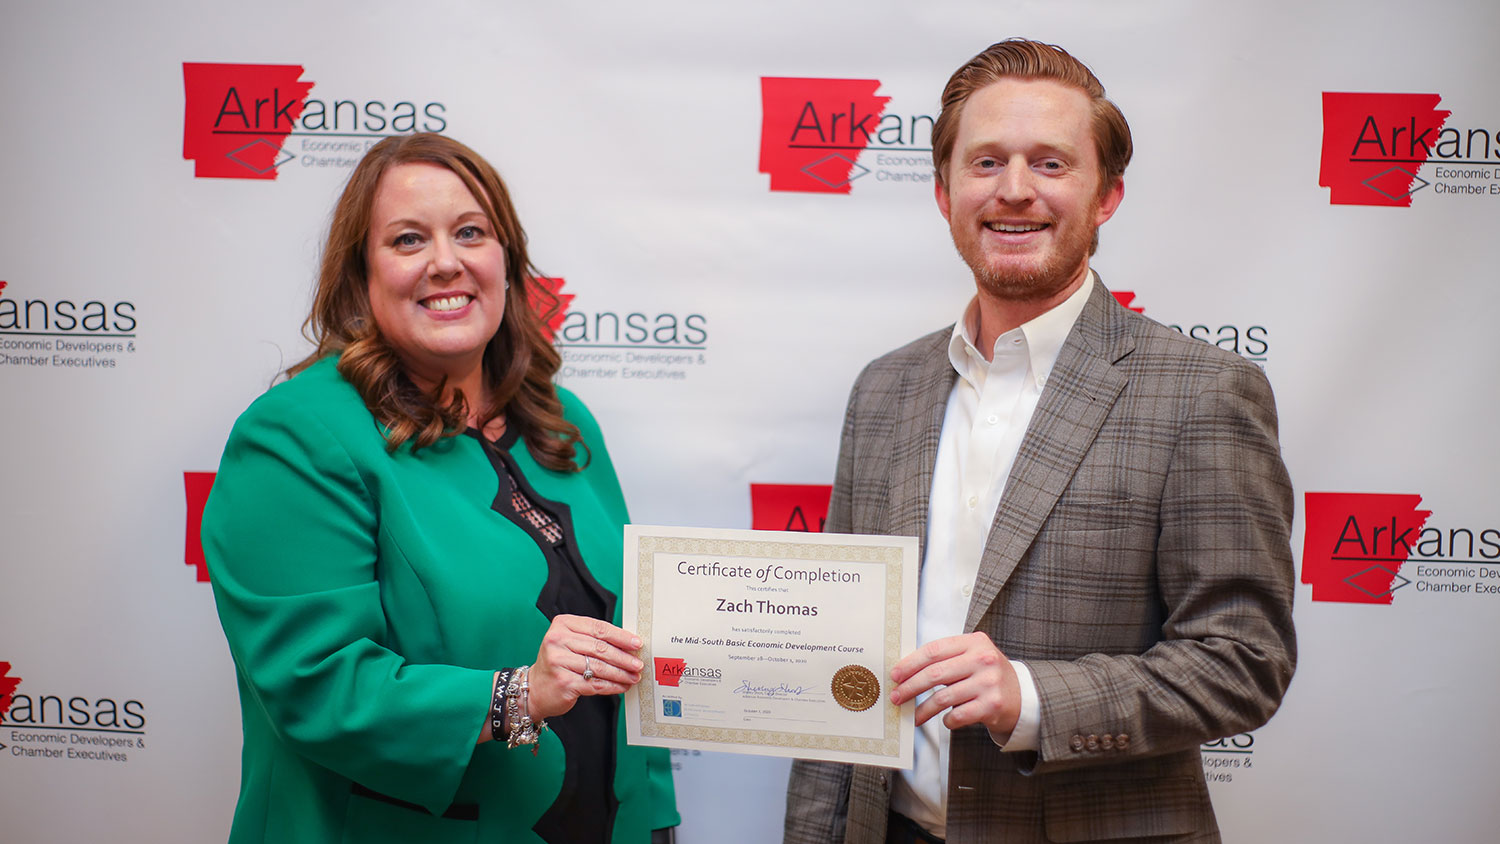 Director of Economic Development Zach Thomas receives his certificate from Shelley Short.